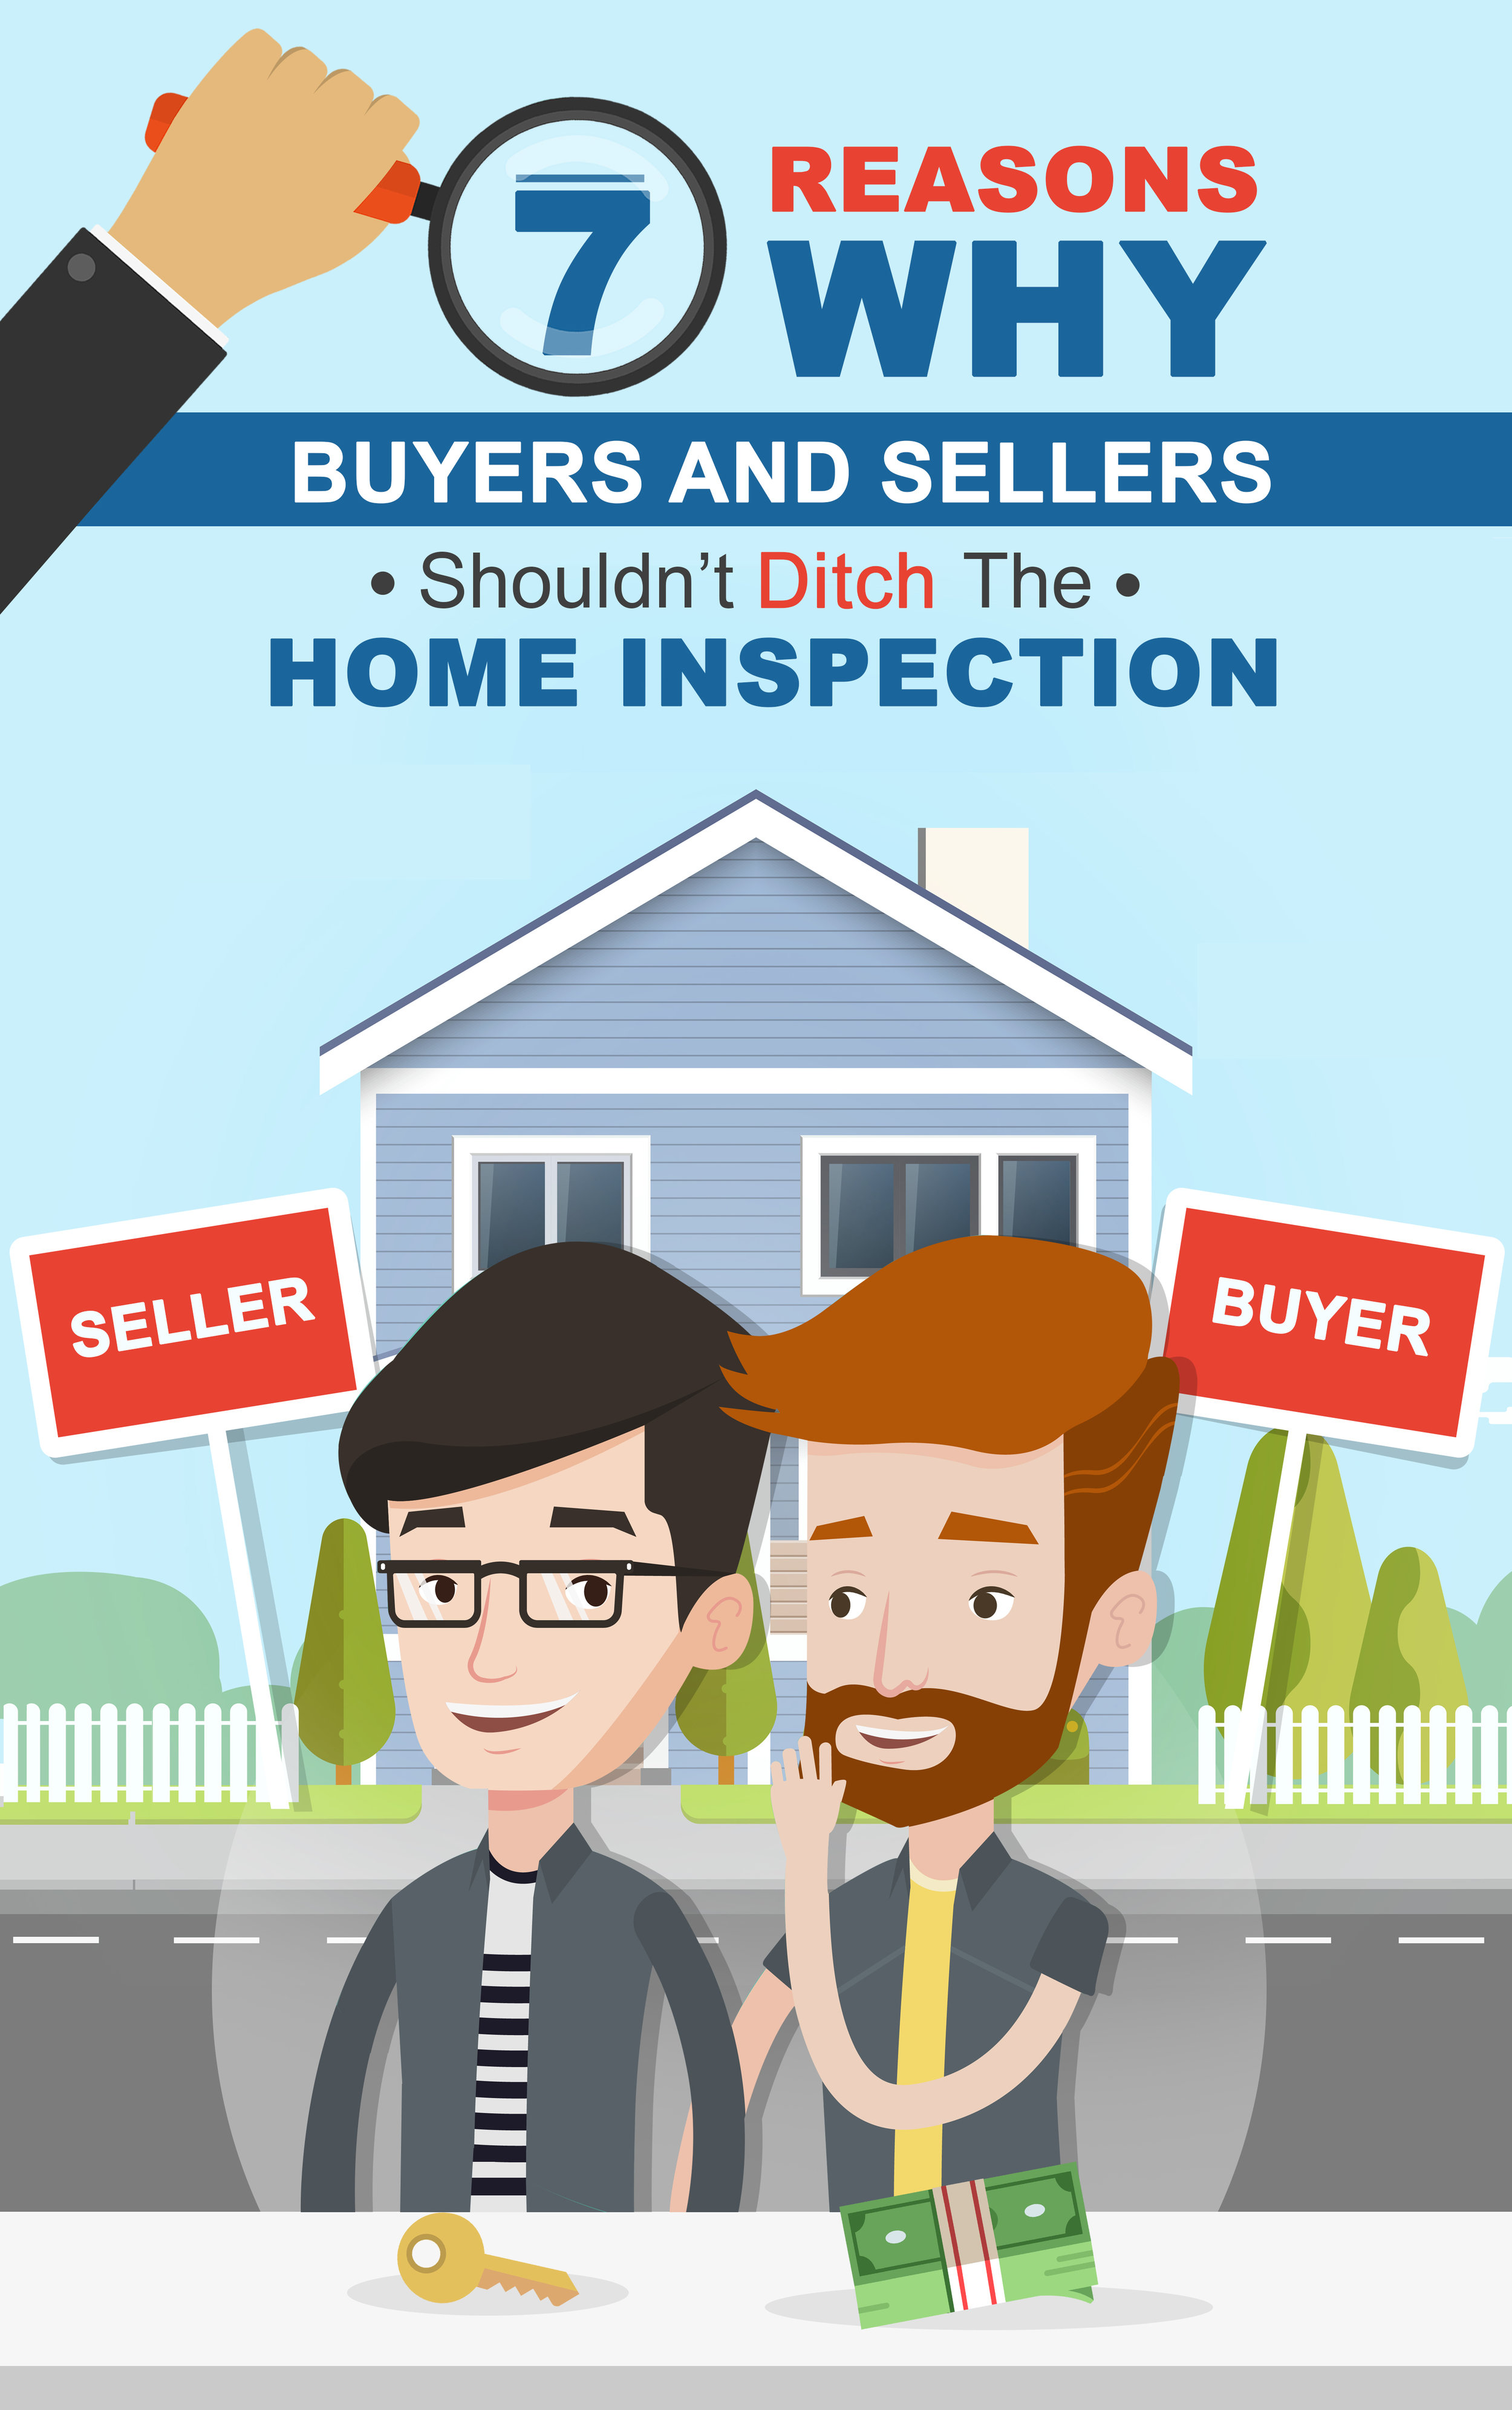 7 Reasons Why Buyers and Sellers Shouldn't Ditch The Home Inspection.jpg